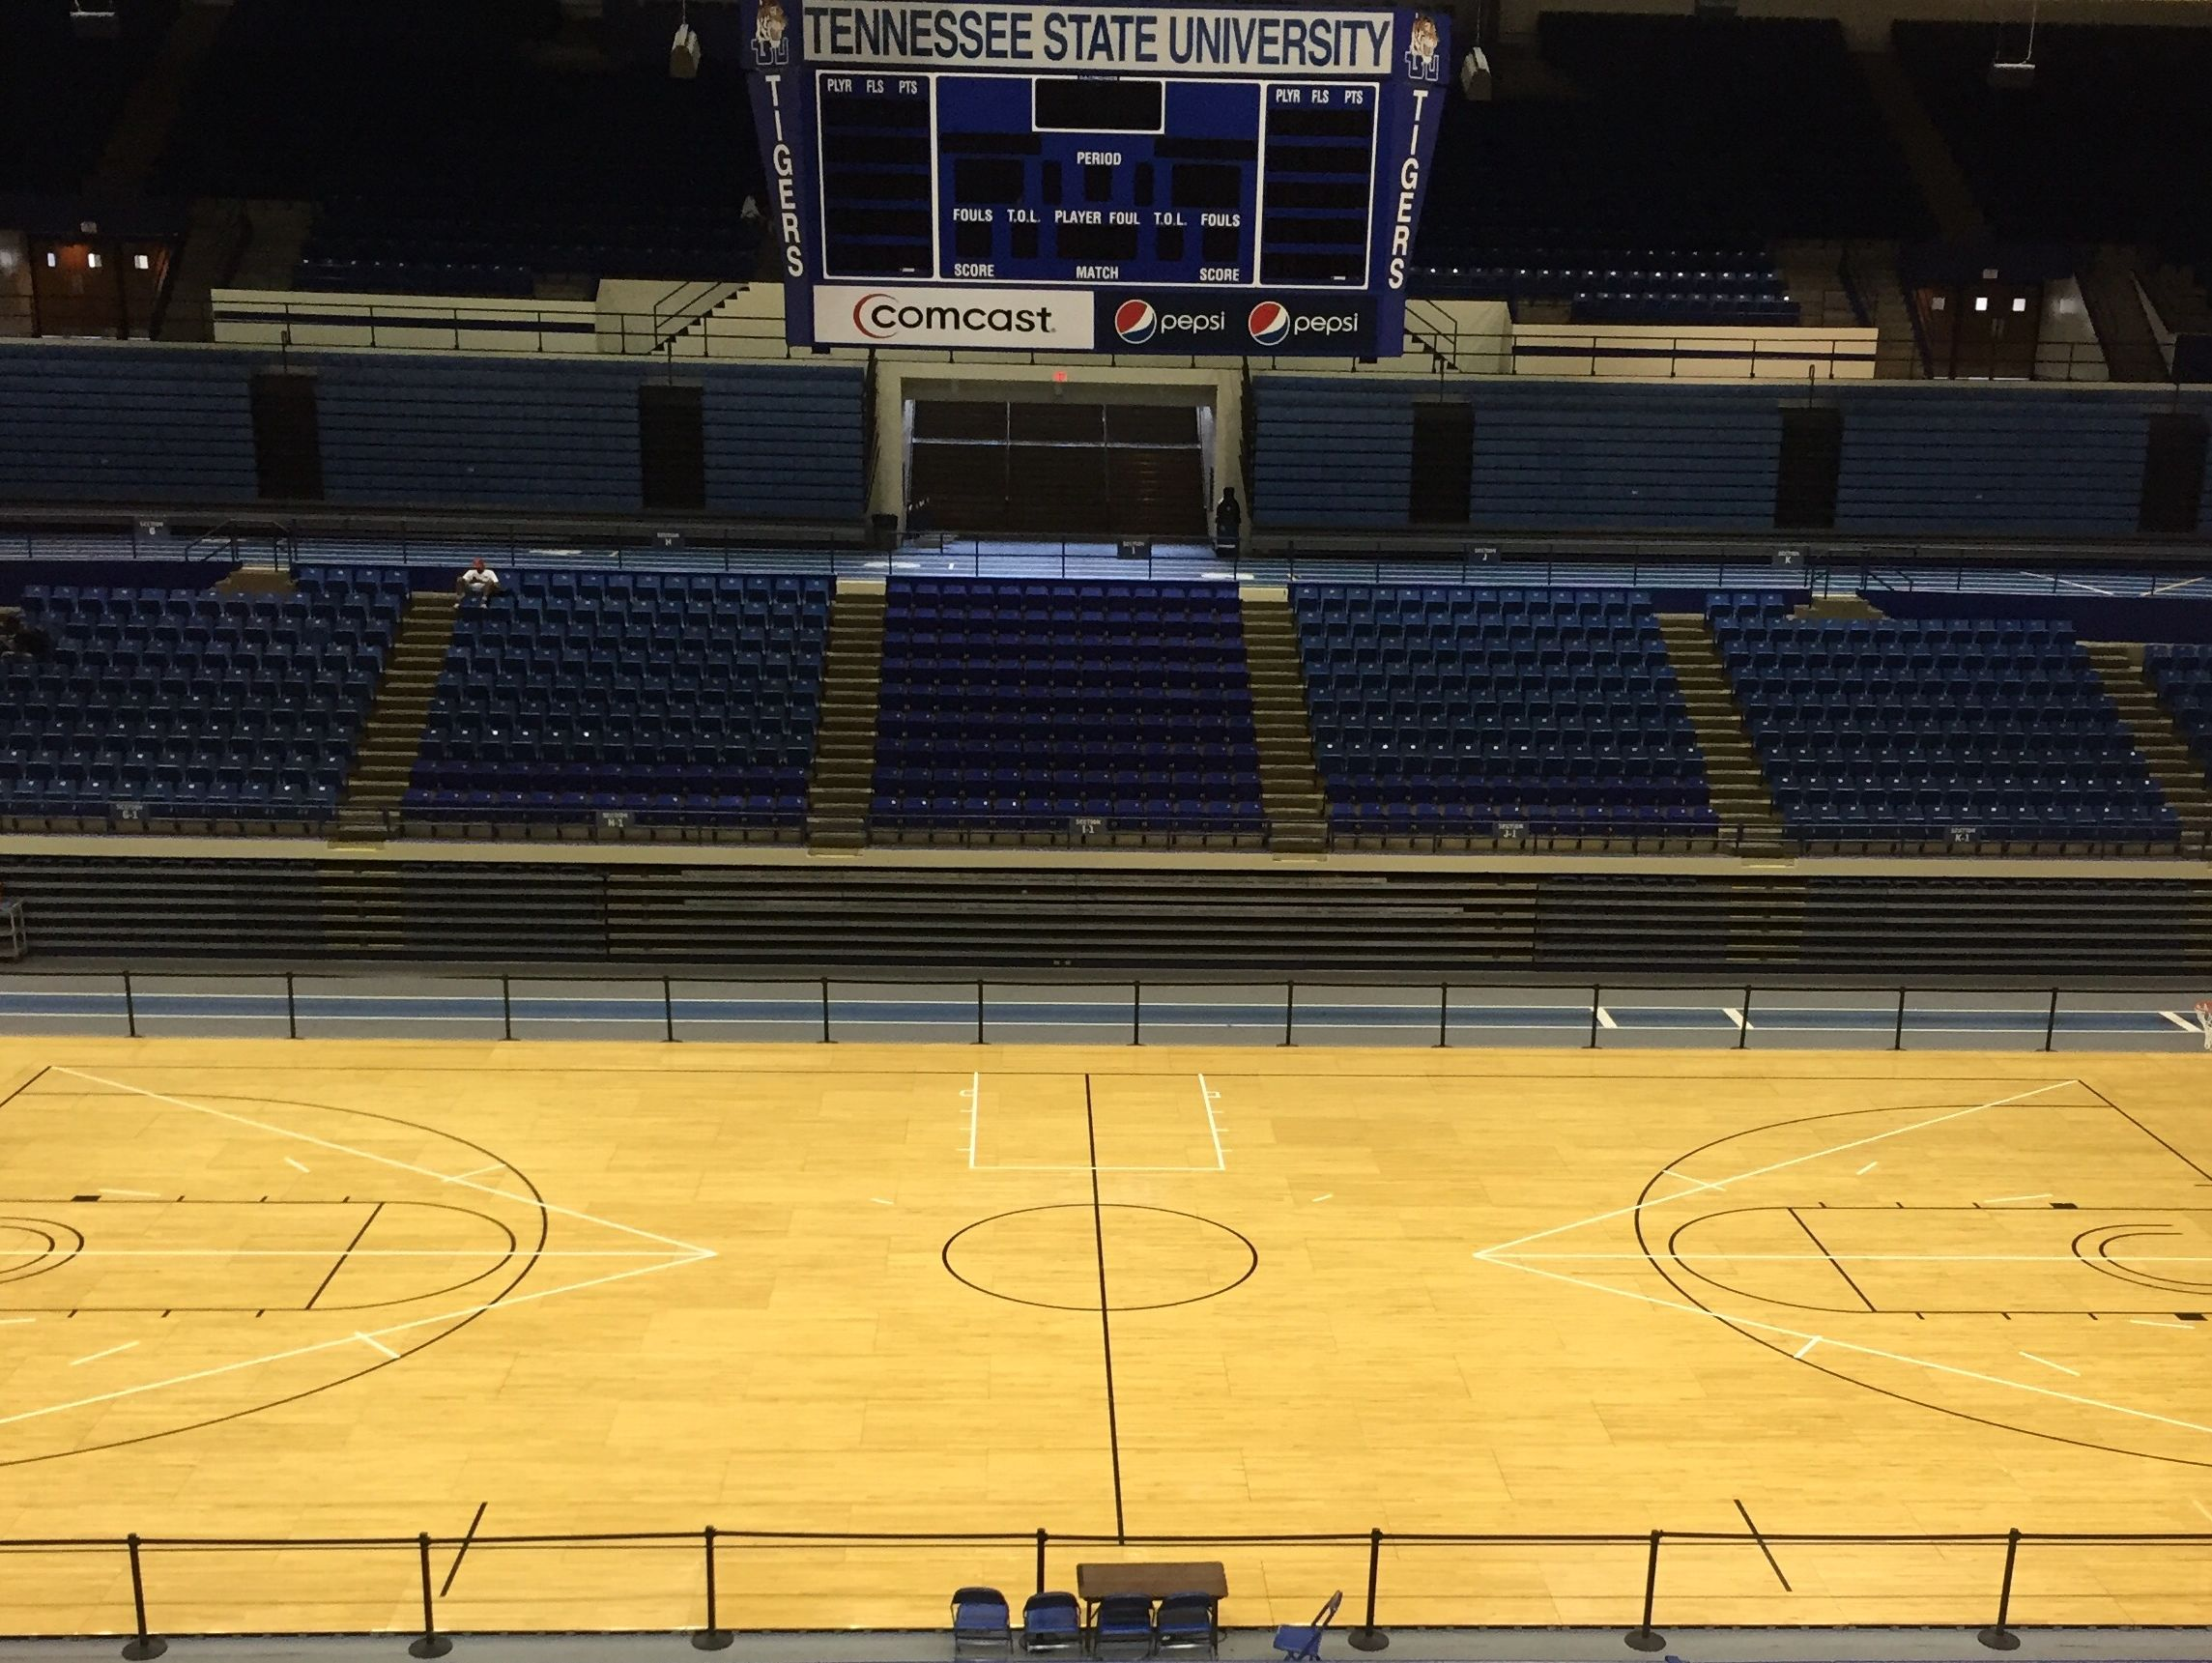 TSU's men's and women's basketball teams will start the season playing on a temporary court with no signage after their regular court was ruined by rain, which came through a hole in Gentry Center created after a lightning strike.